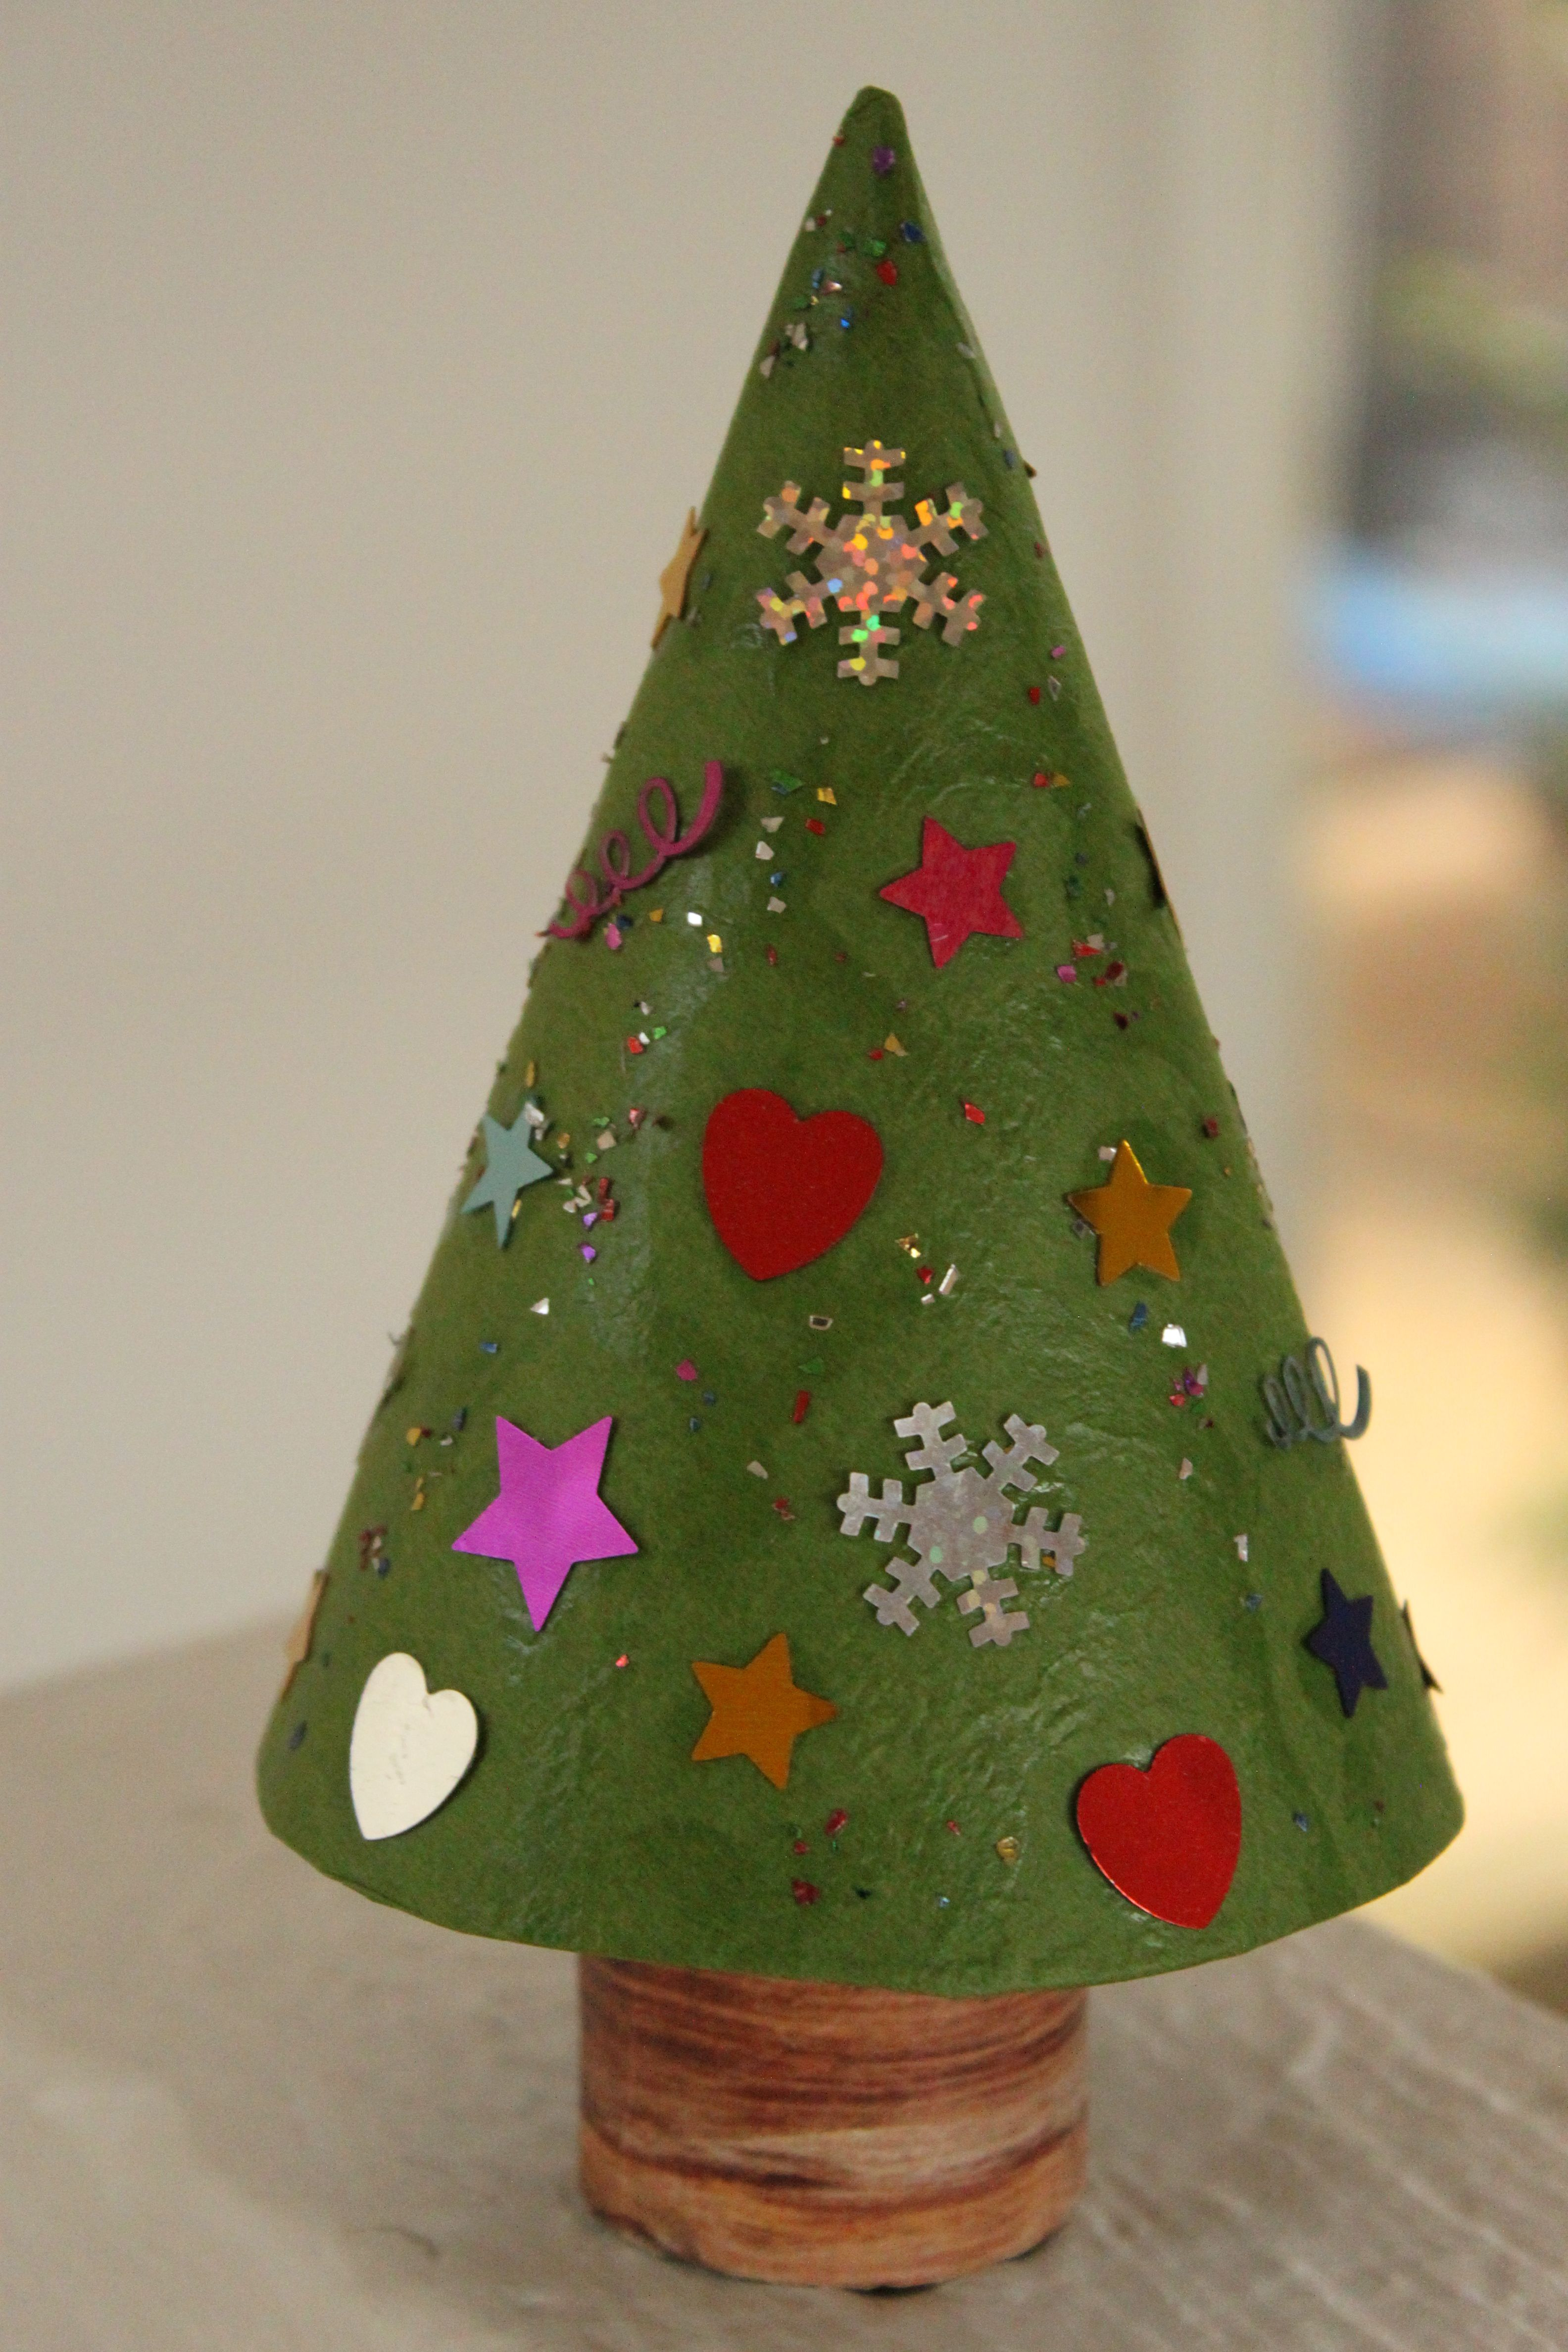 Make Mini Christmas Trees For The Kids To Decorate Out Of Toilet Paper Rolls And Coloured Paper Christmas Crafts For Kids Christmas Crafts Sunday School Crafts